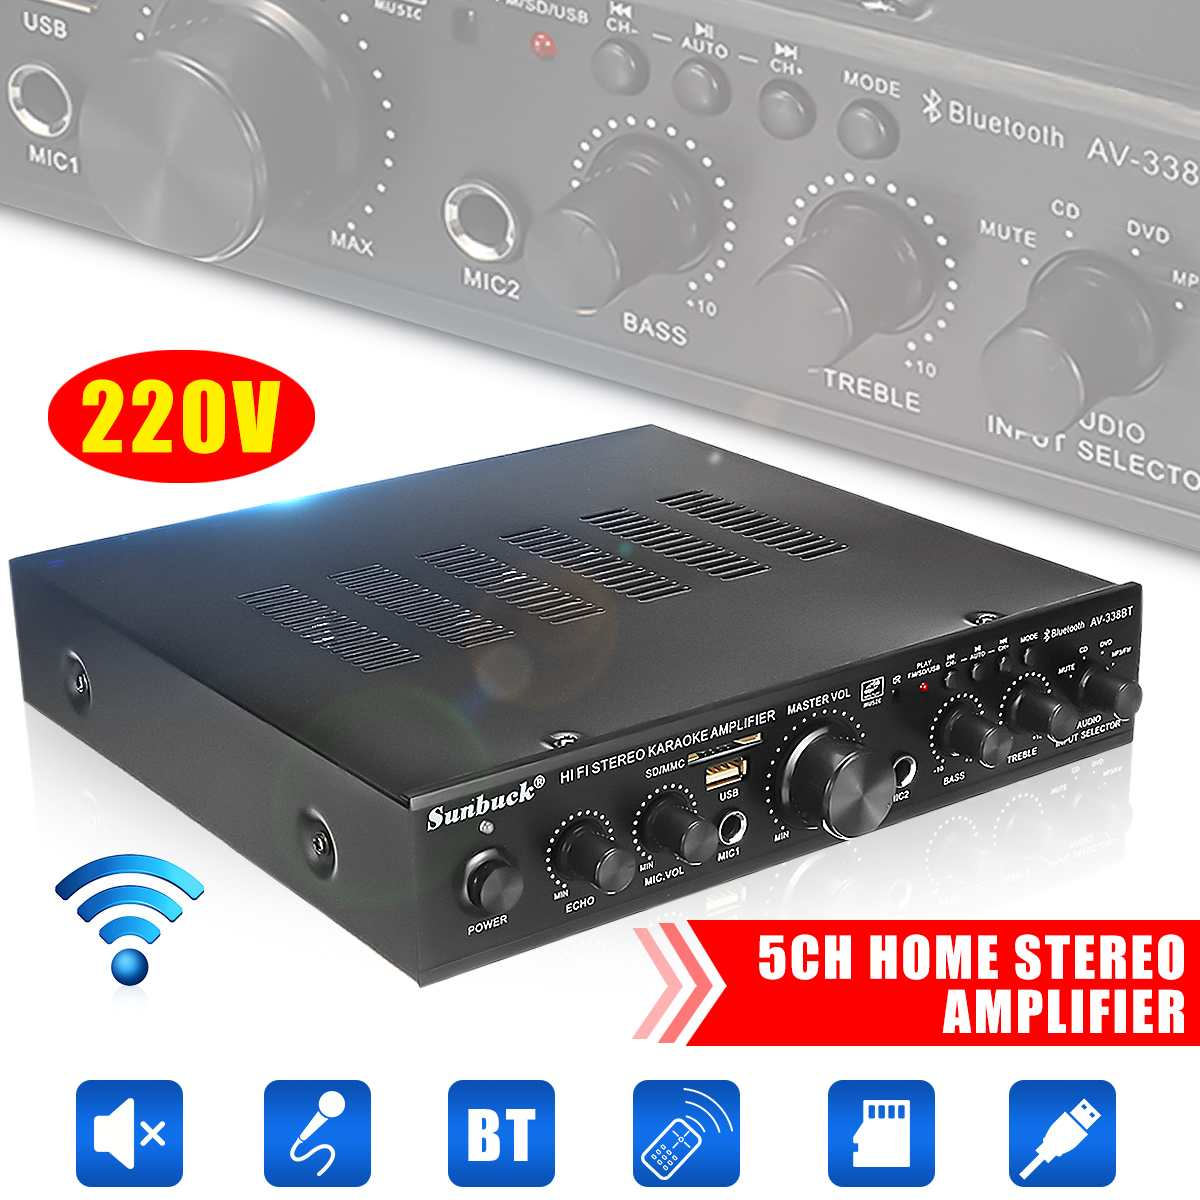 600W Home Amplifier 5.1 Home Amplifiers Audio Hifi Bass Audio Power Amplifier Home Theater Amplifier For Subwoofer